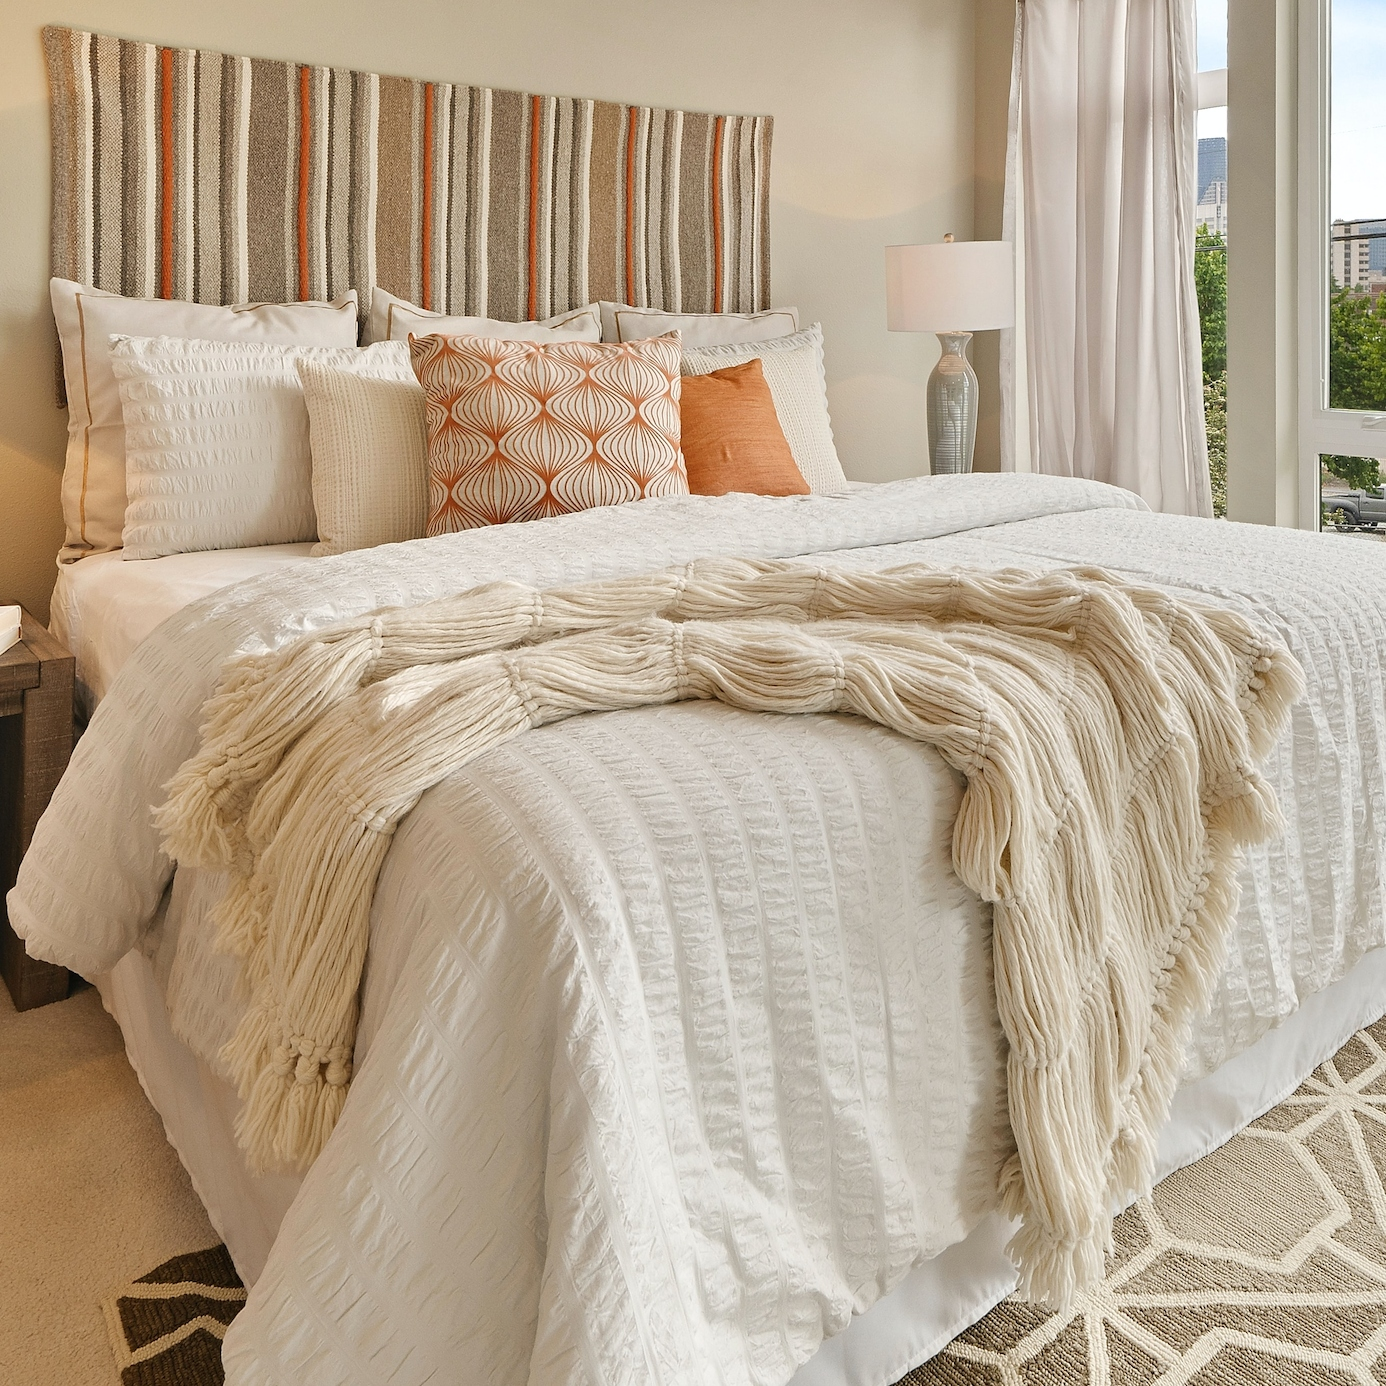 Bed Decorated with White and Orange Colors